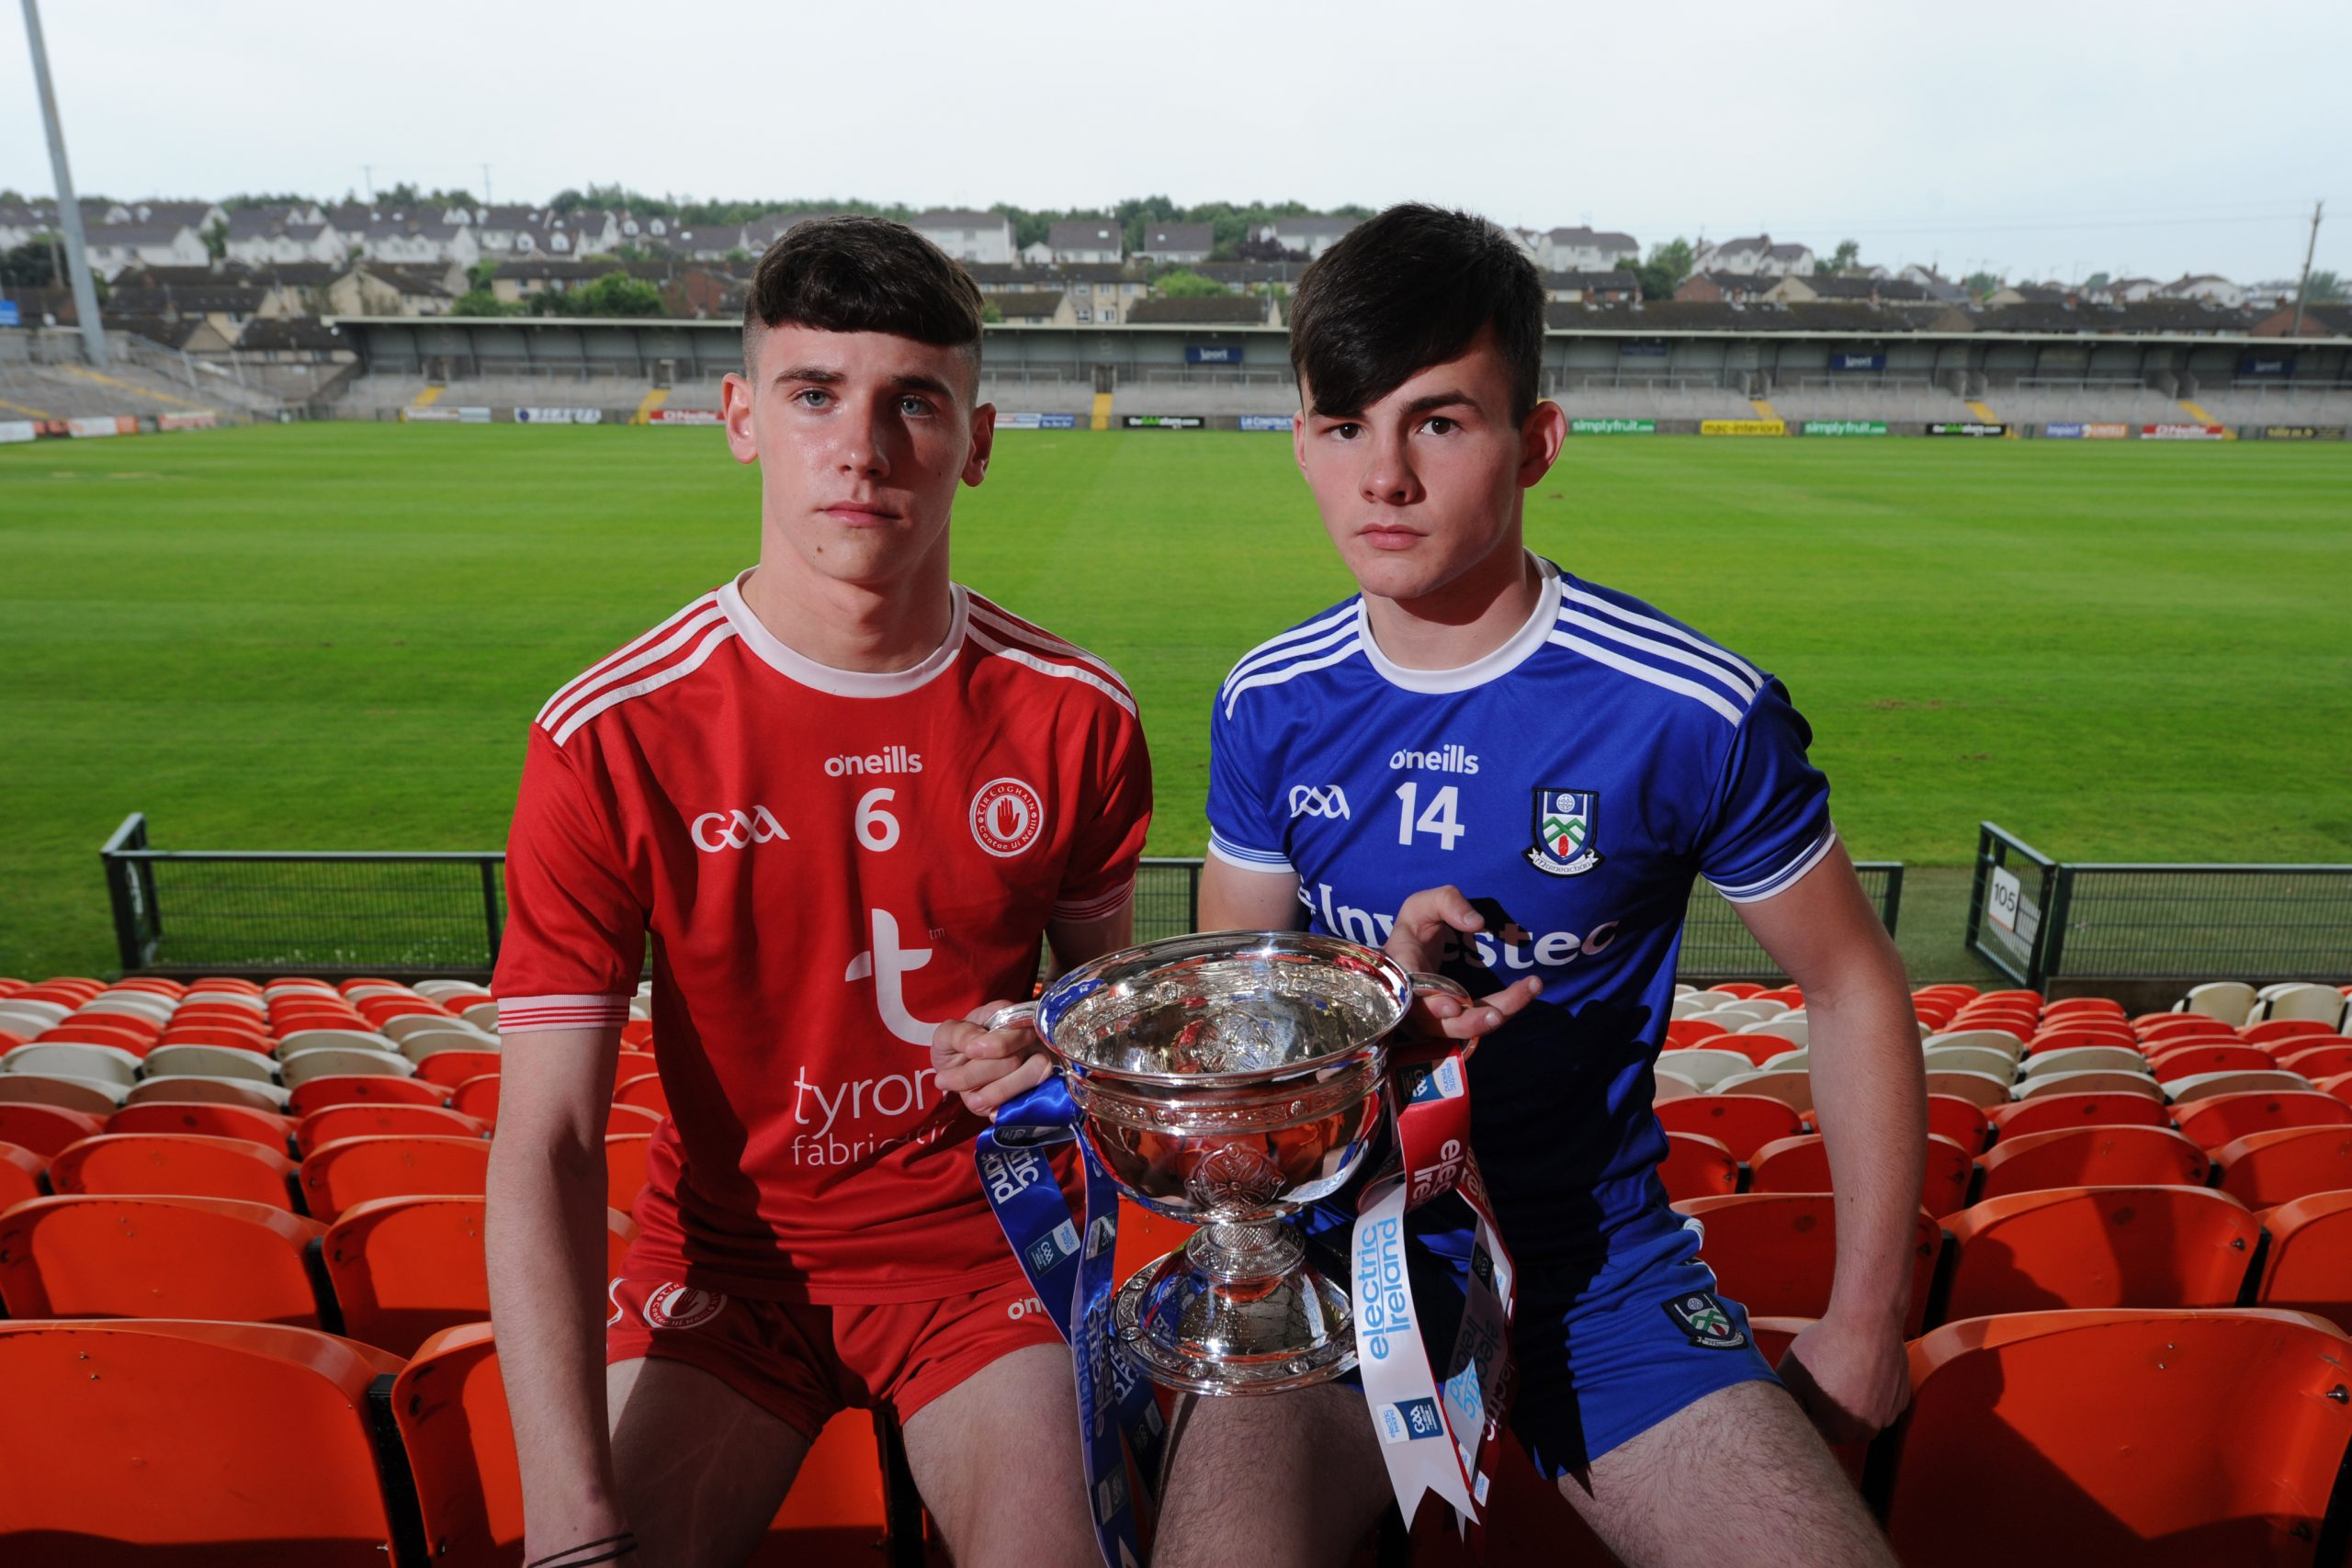 PREVIEW: Tyrone seek to deny Monaghan back-to-back titles